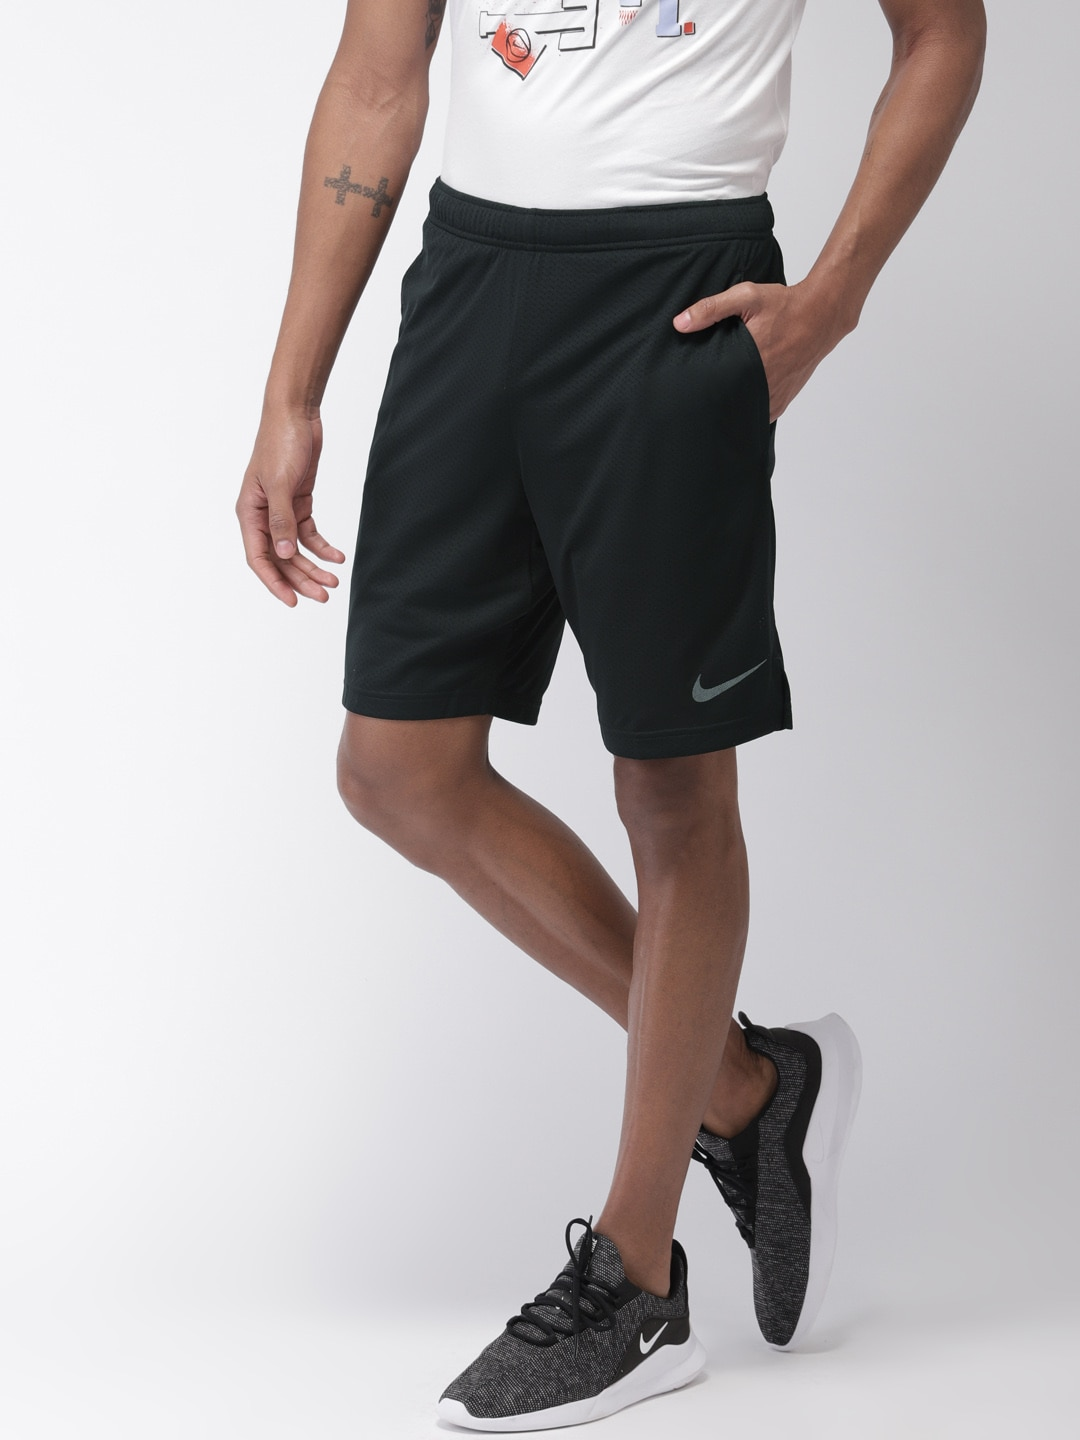 1ab170bcf513 Men Sportswear - Buy Sportswear for Men Online in India - Myntra